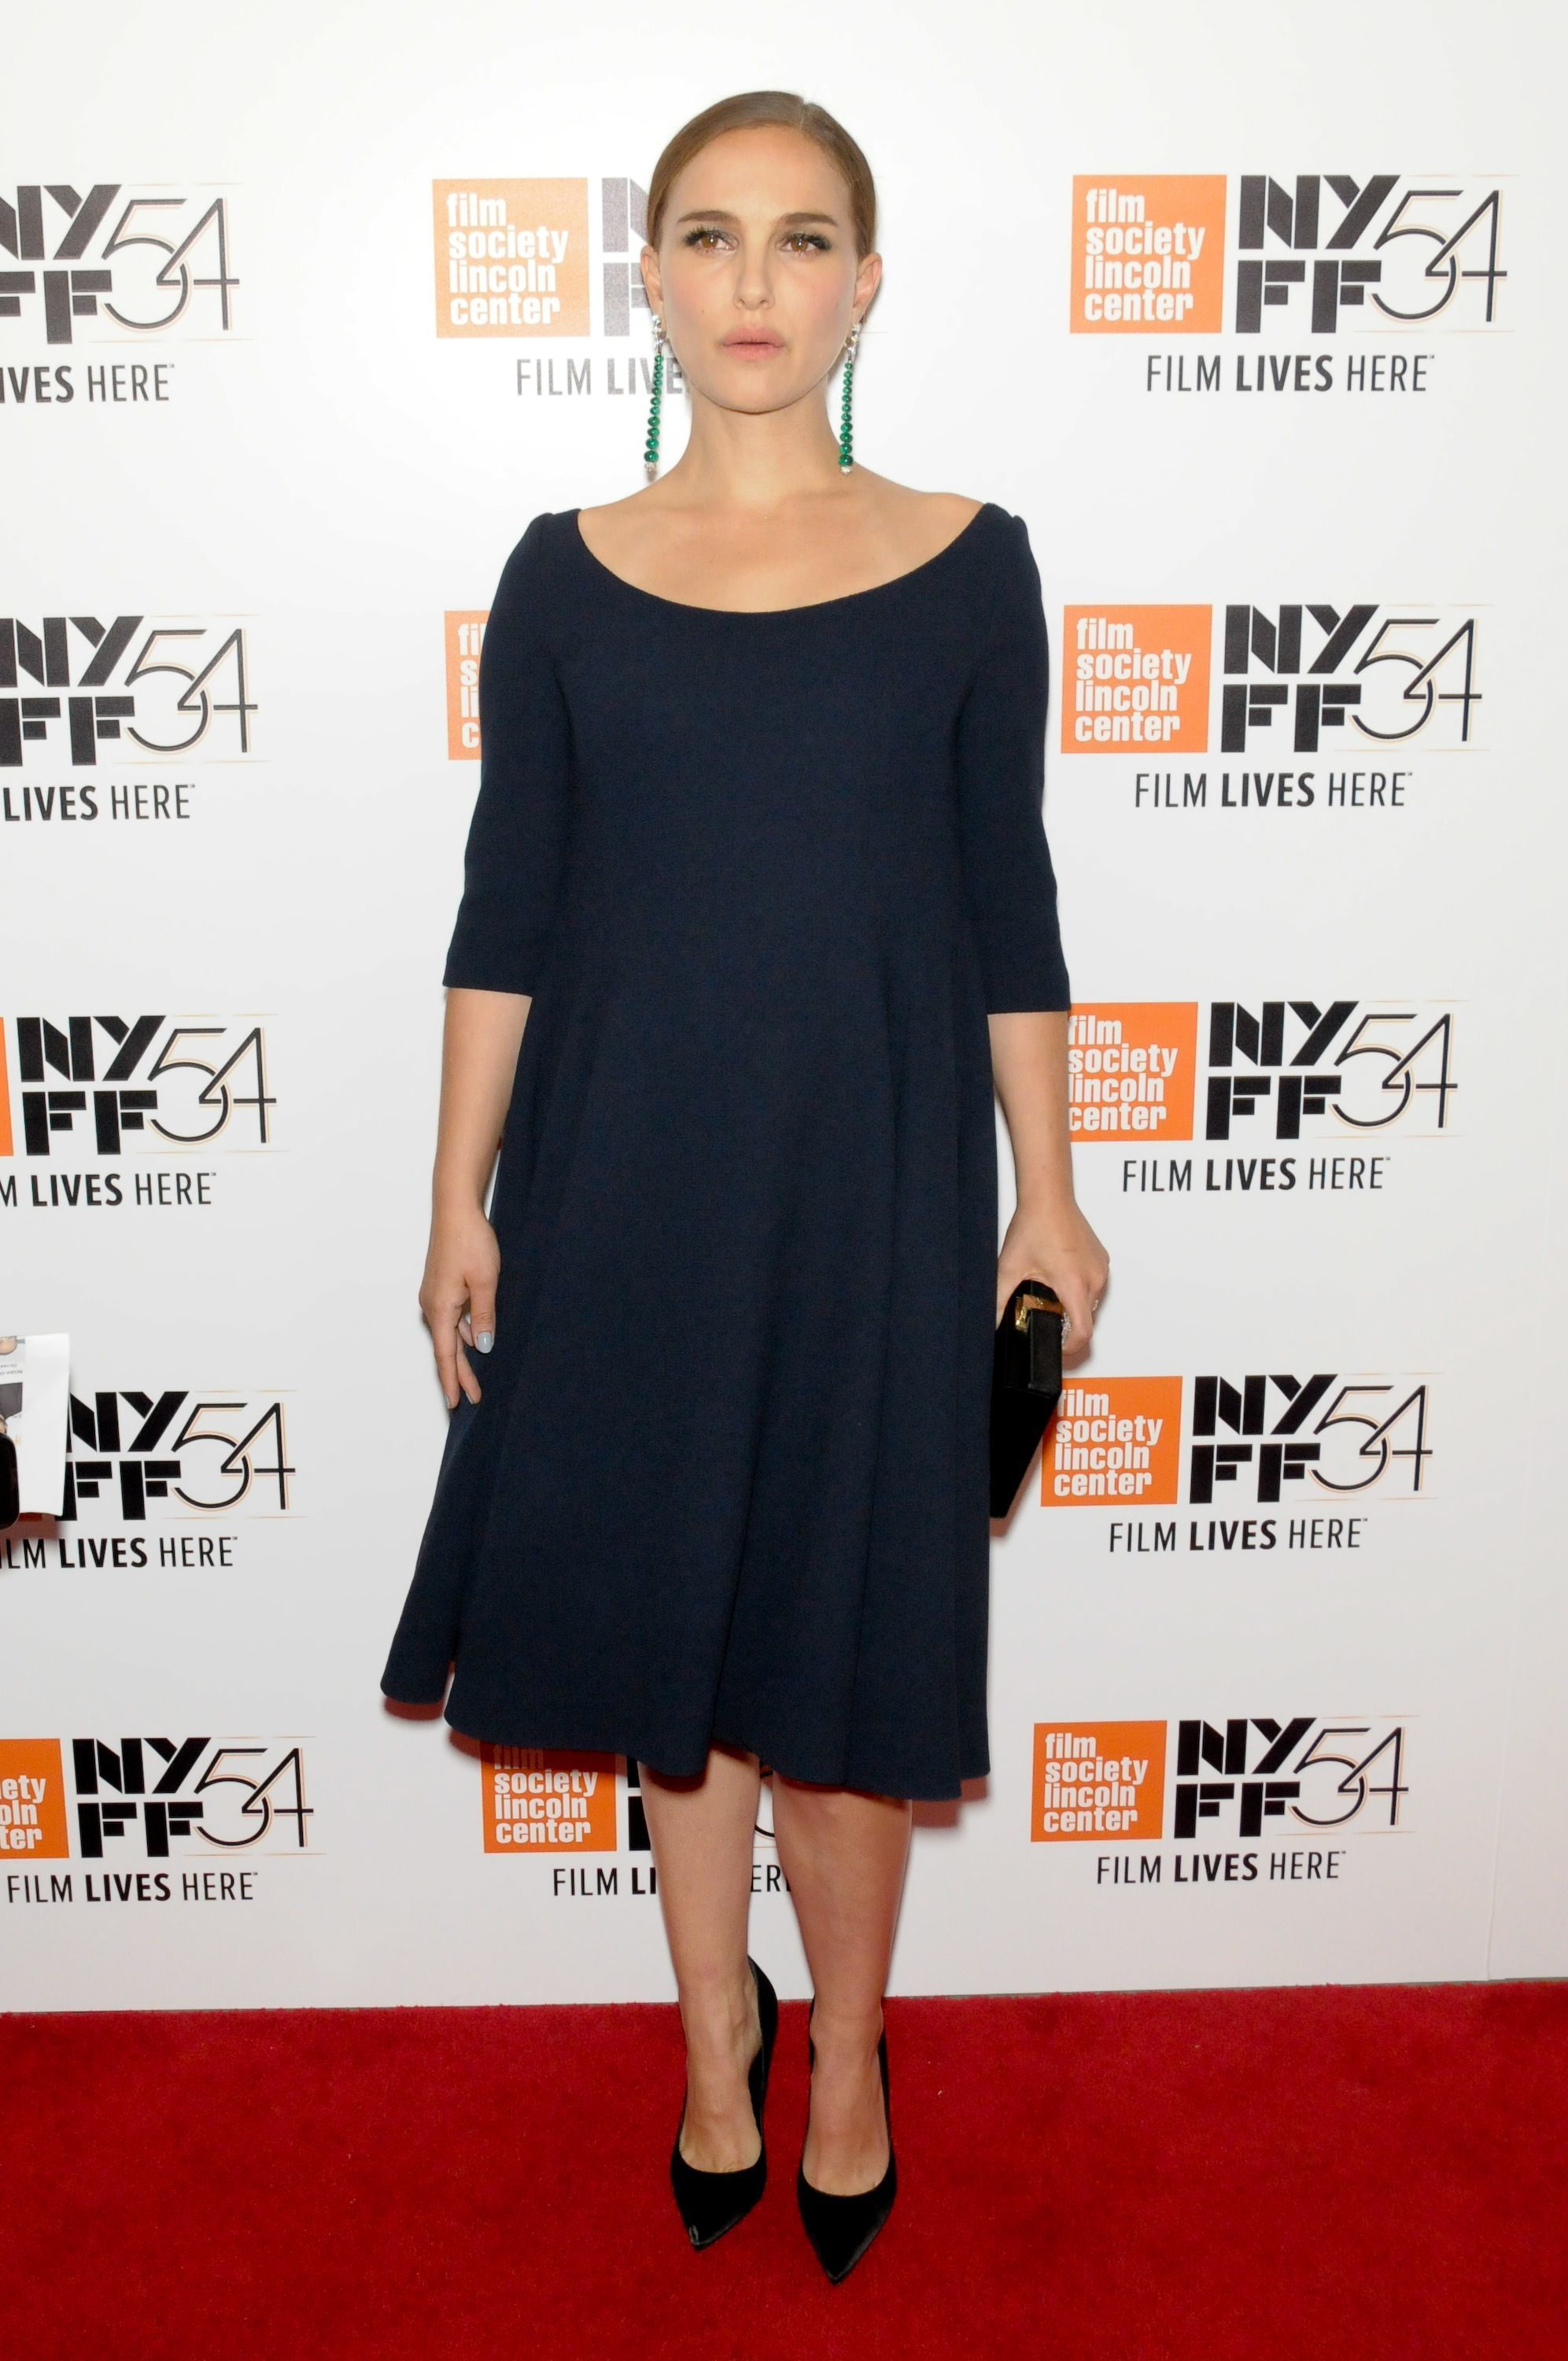 Natalie Portman shows off her growing bump at NYFF premiere